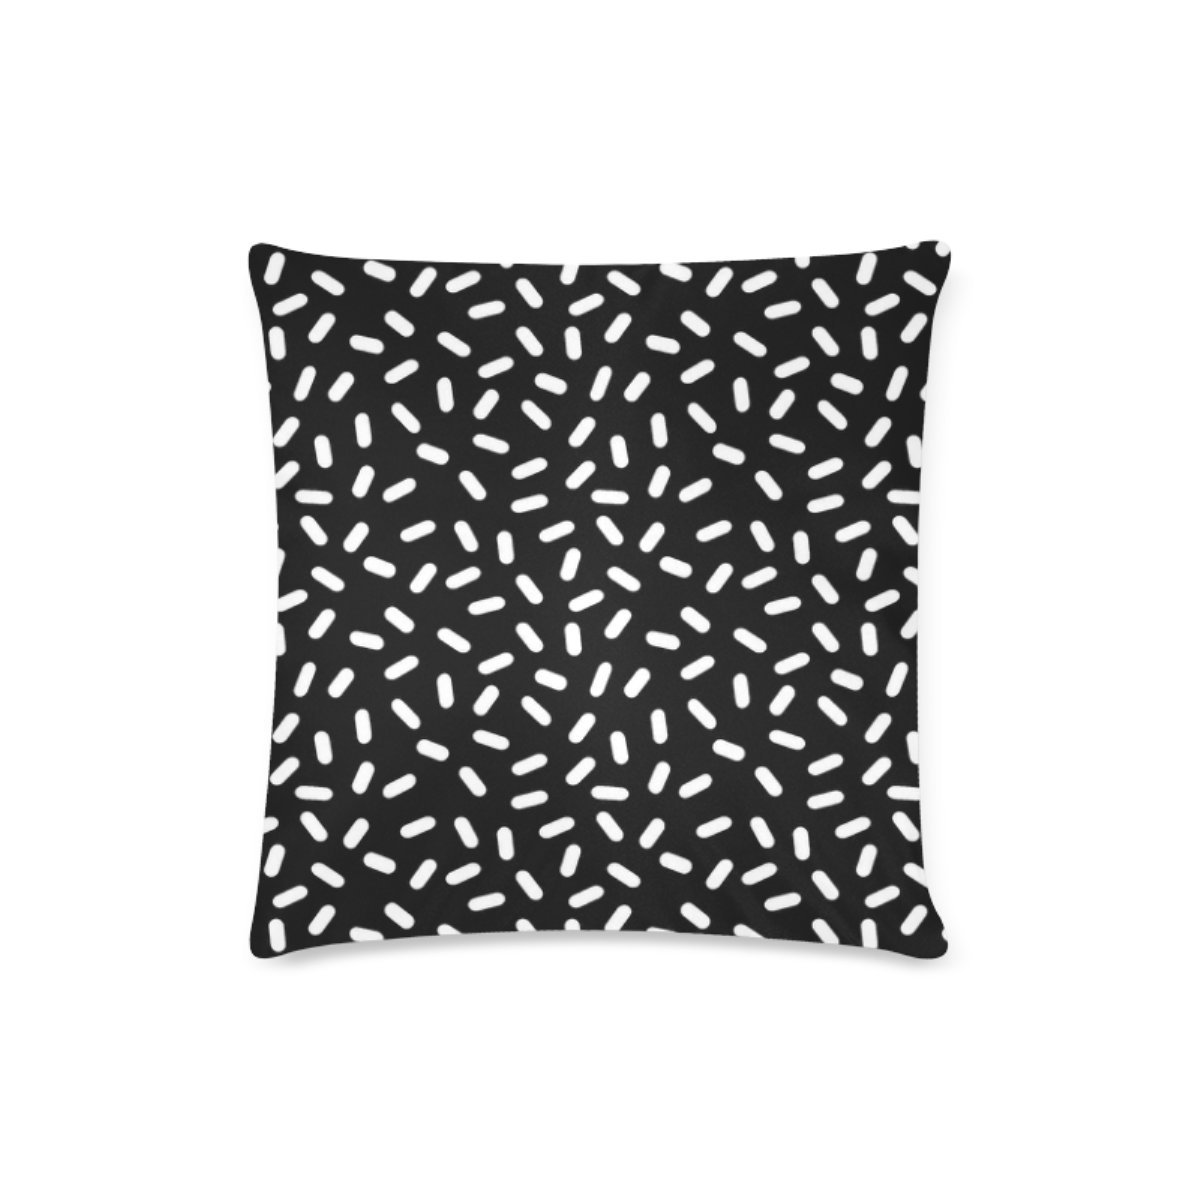 Custom Bingo Black And White Cushion Cases Zippered Throw Pillow Covers 16 by 16 Inches by BEAYCUSHIONS